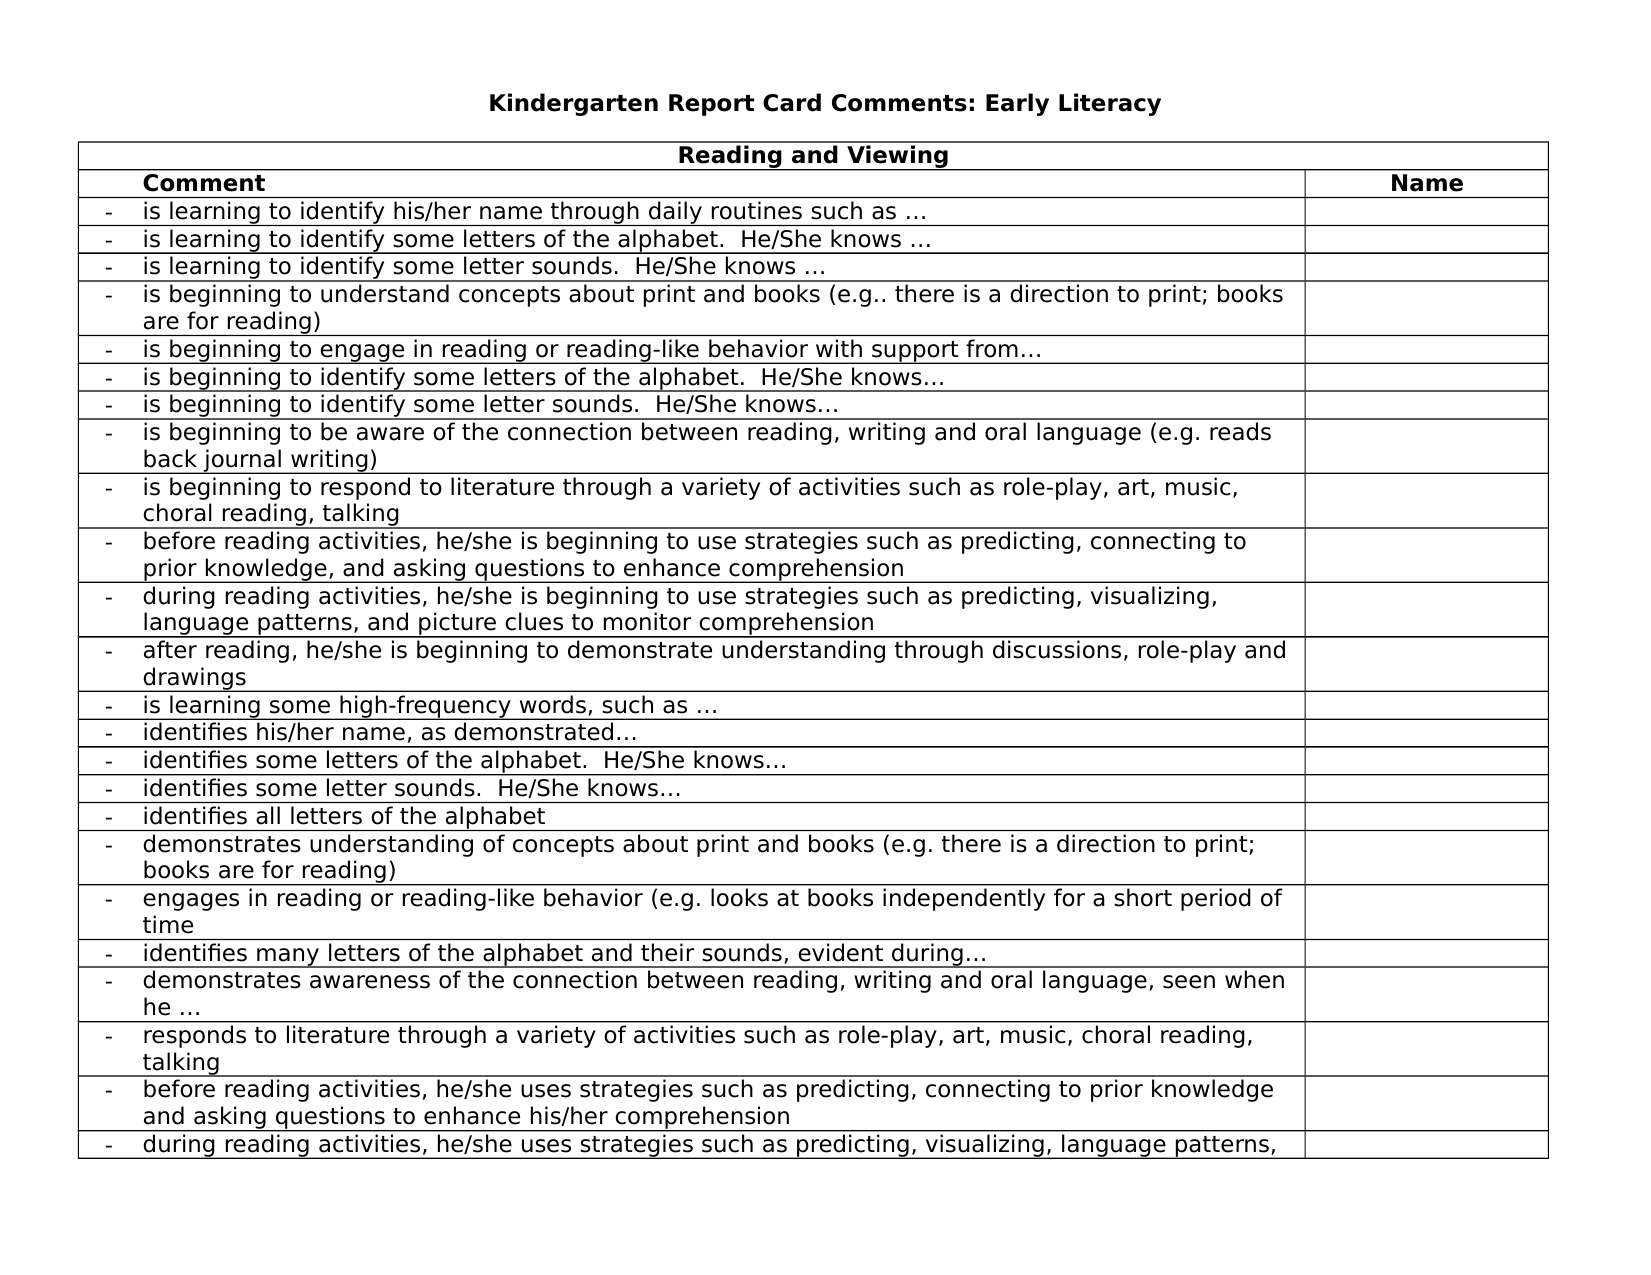 KG Report Card Comments for Early Literacy Resource Preview